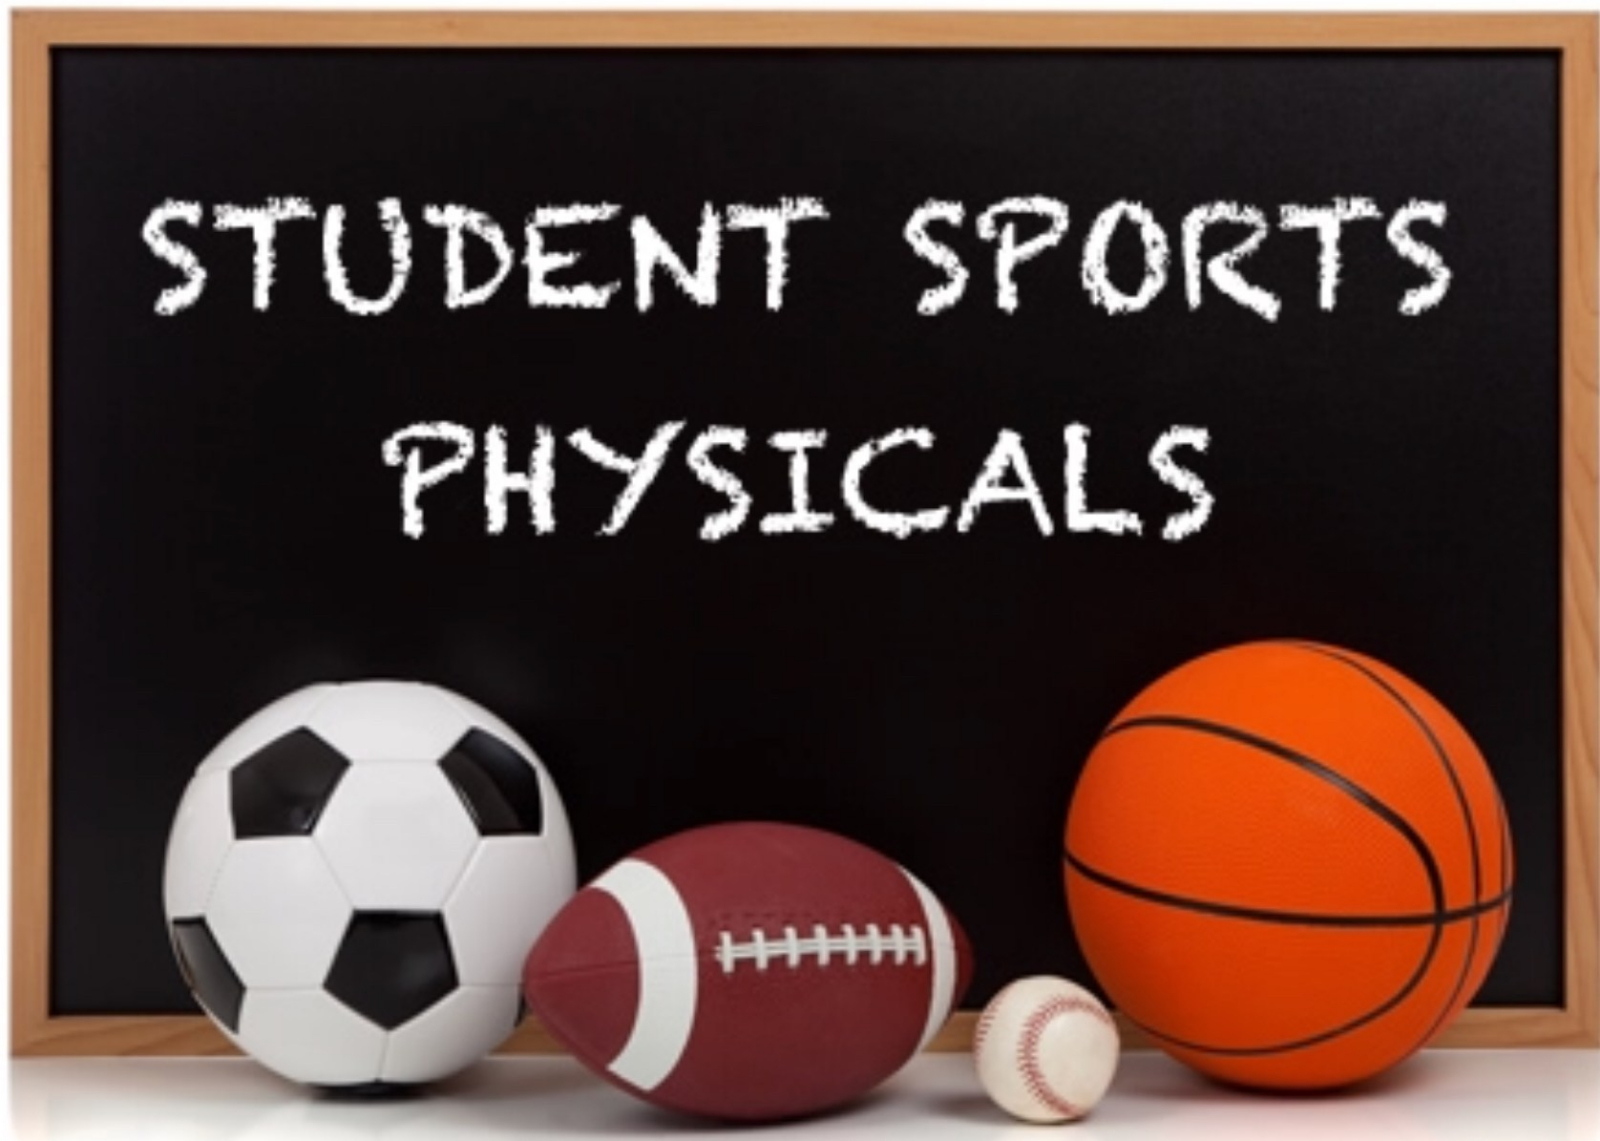 All Sports: School Physicals this Saturday in Raider Arena